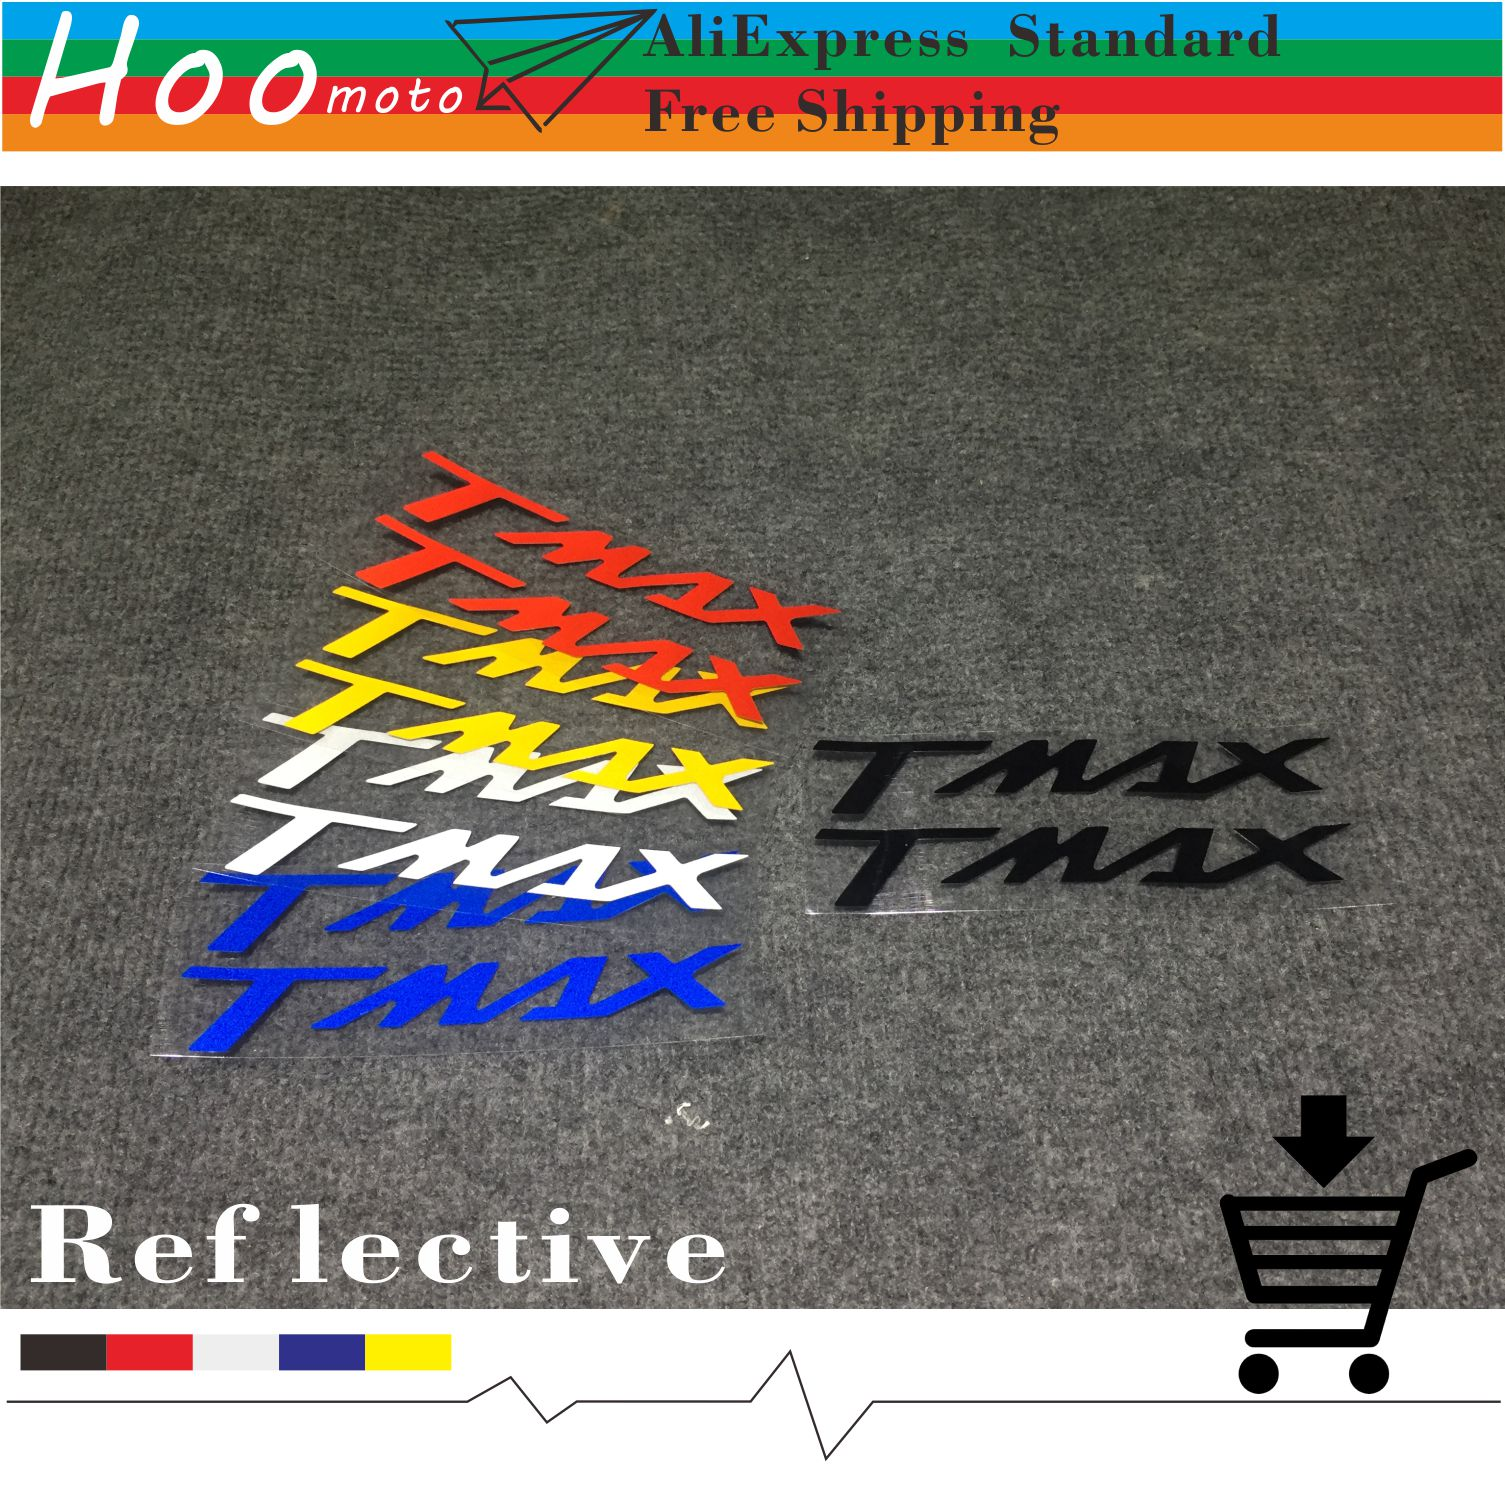 1pcs 16cm=6.3in For YAMAHA TMAX 530 T-MAX 530 TMAX530 500 Reflective Stickers And Decals Car-styling Motorcycle MOTO DIY Label